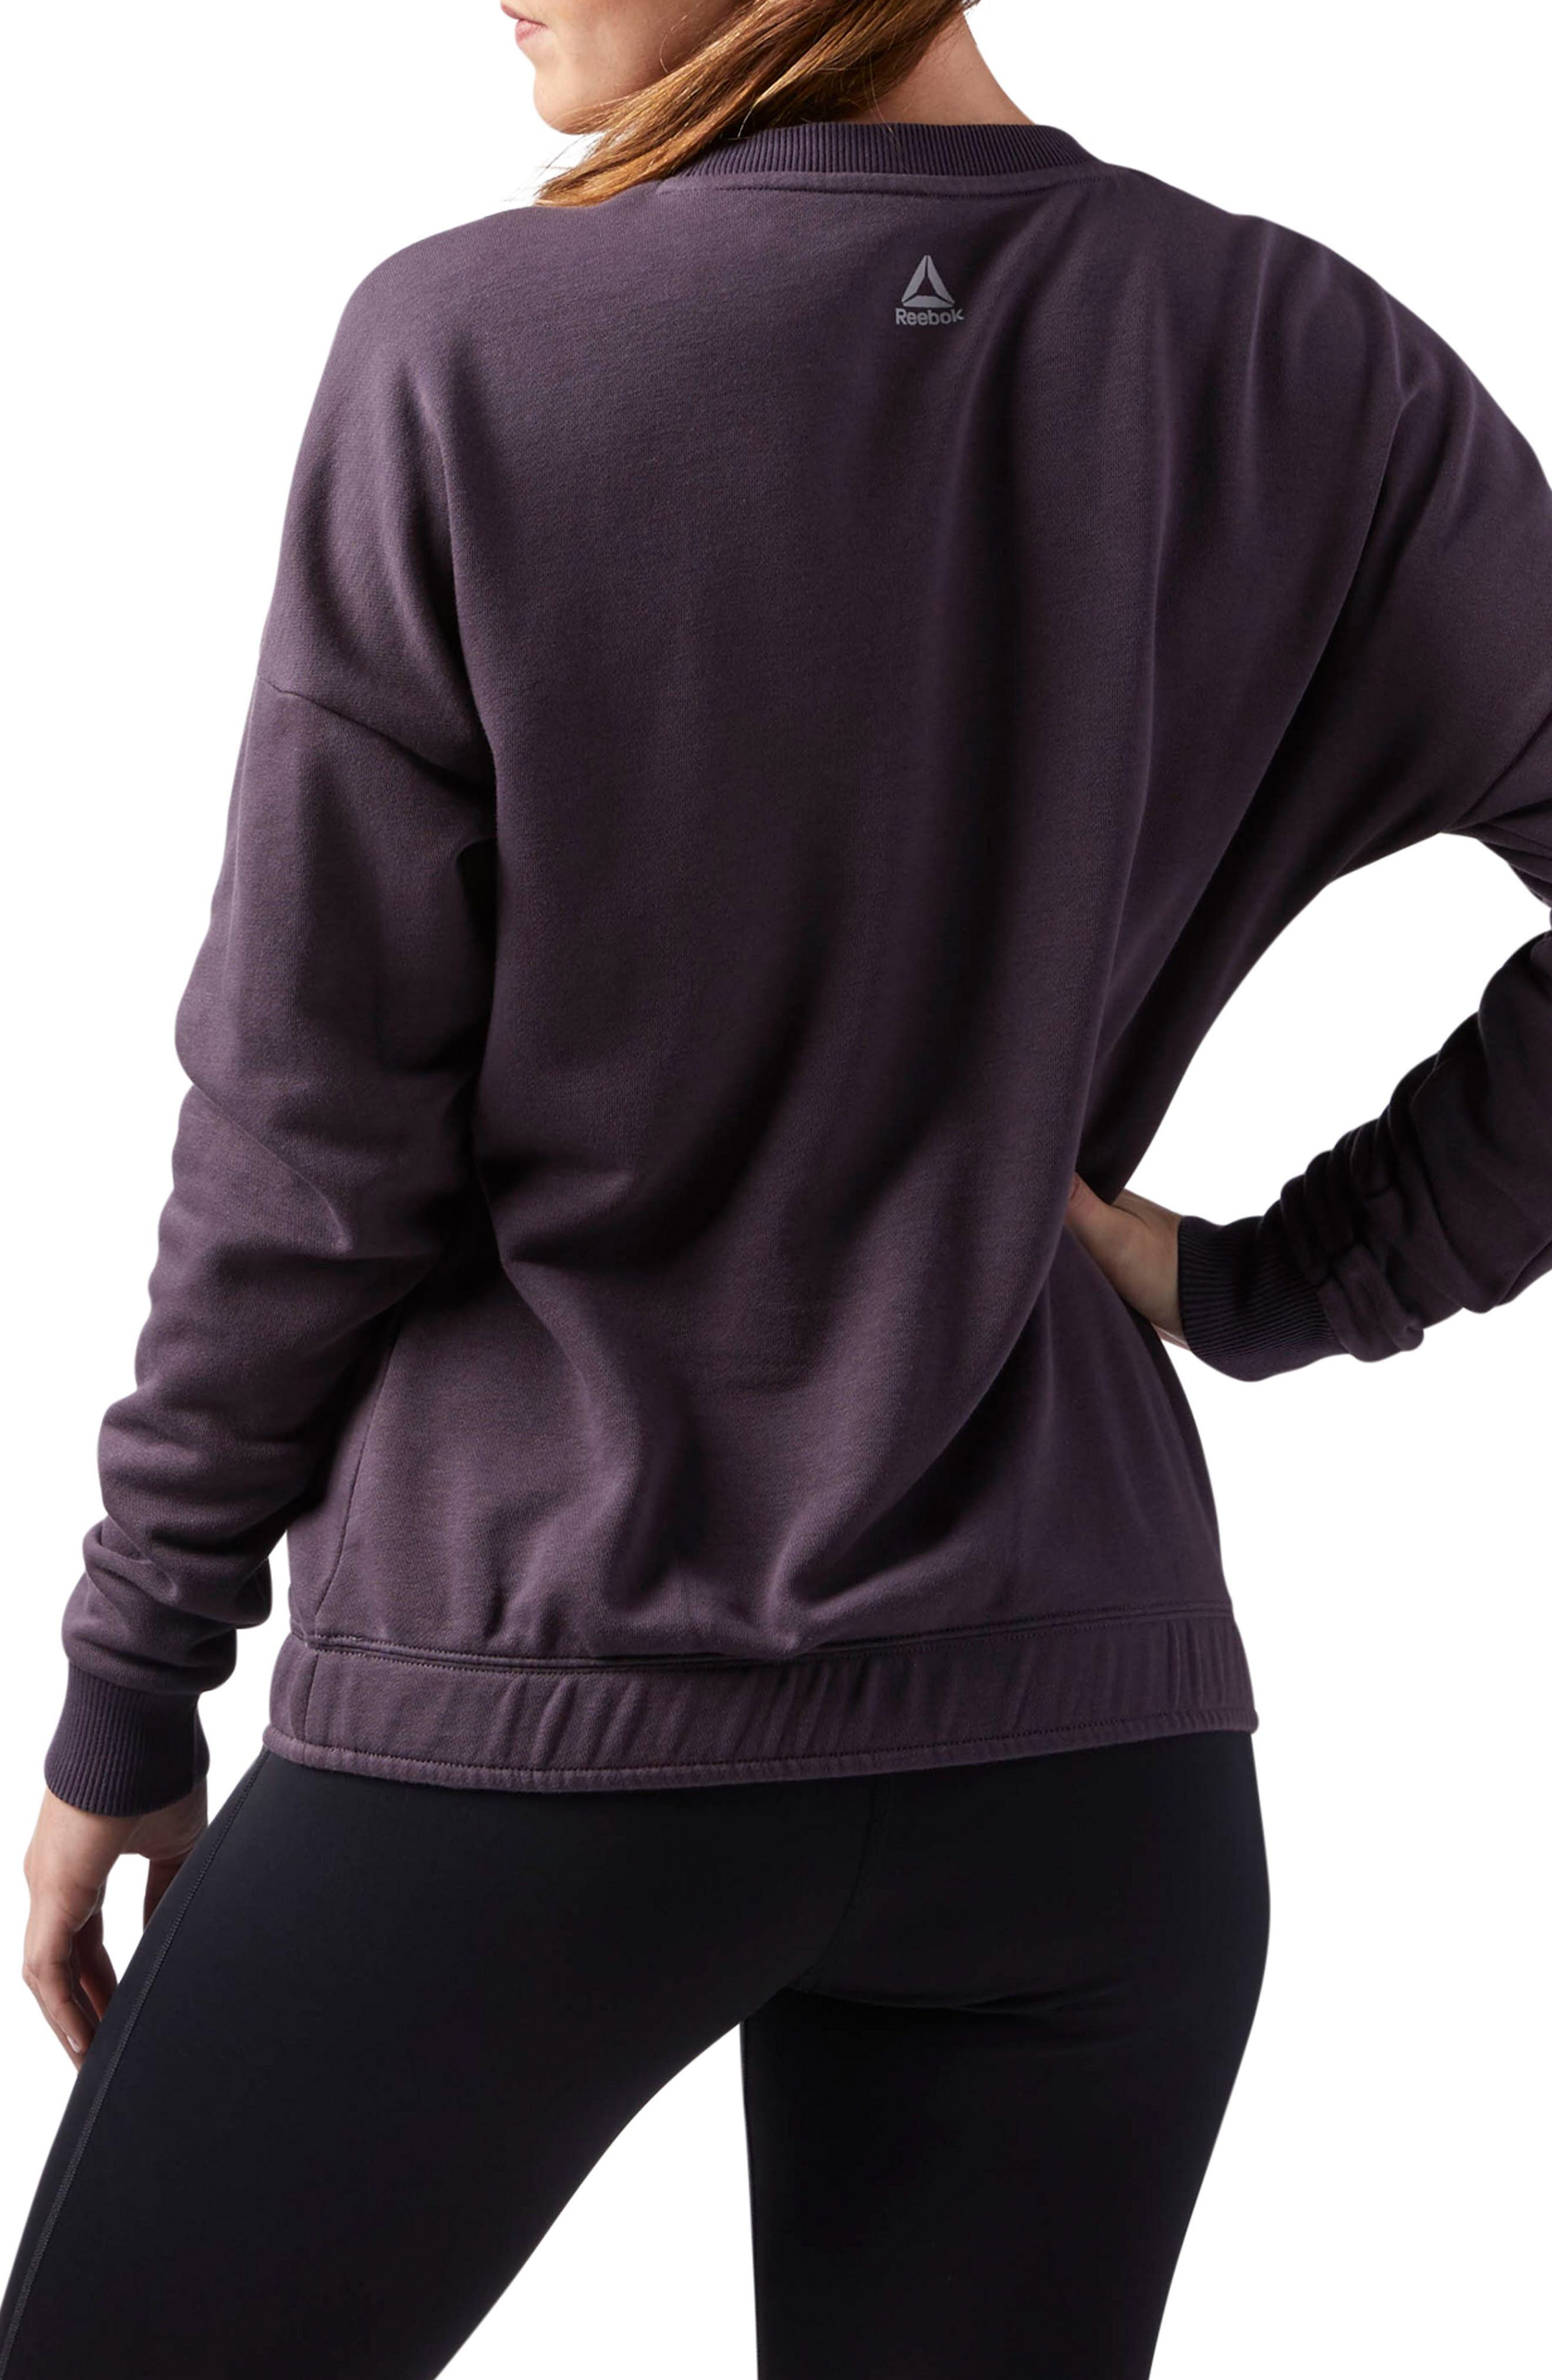 Elements Washed Sweatshirt,                             Alternate thumbnail 2, color,                             Smoky Volcano S18-R